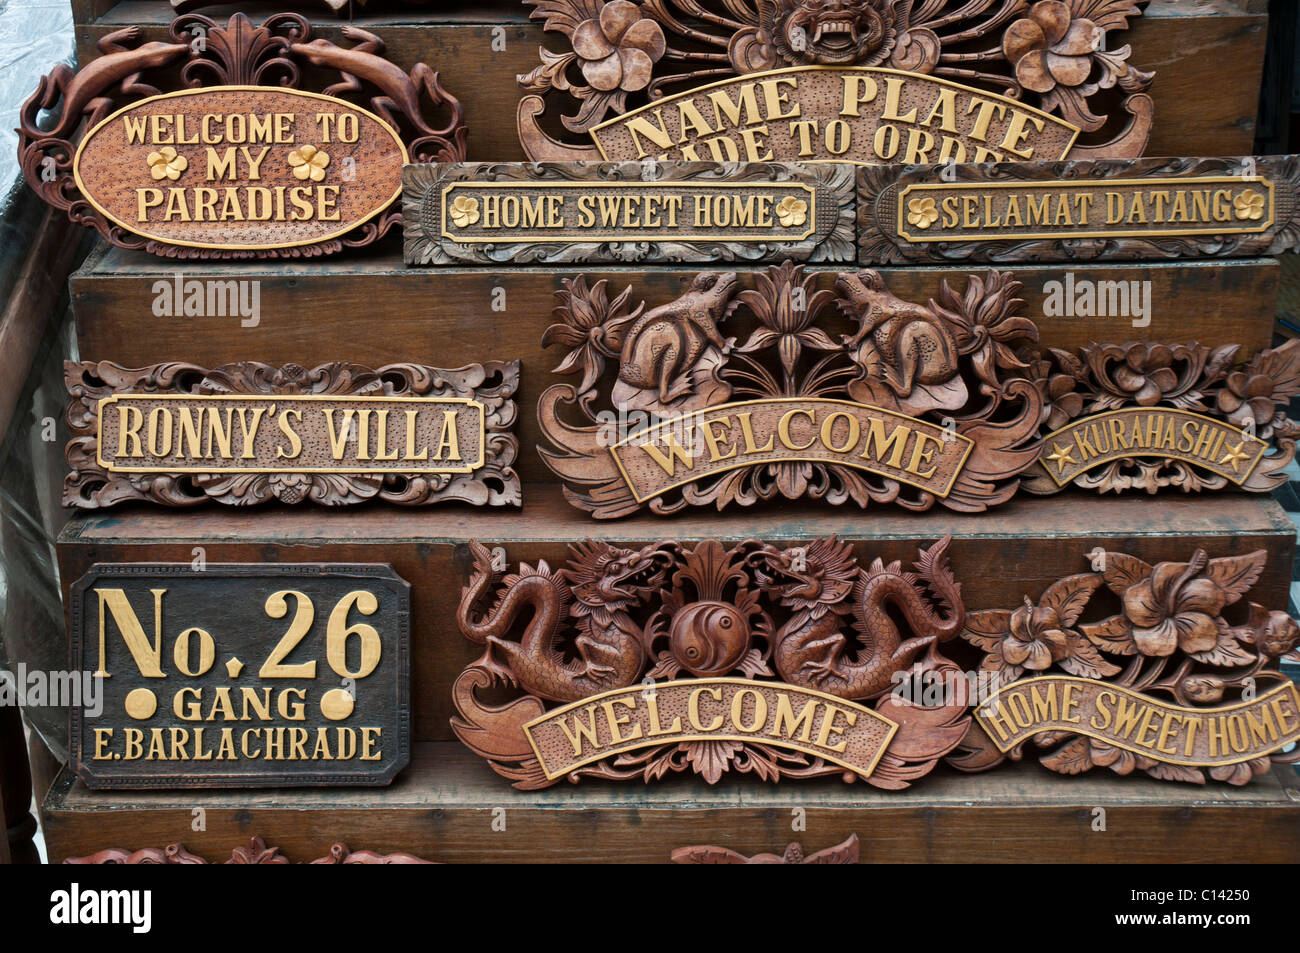 Elaborately carved wooden signs made to order in Bali ...